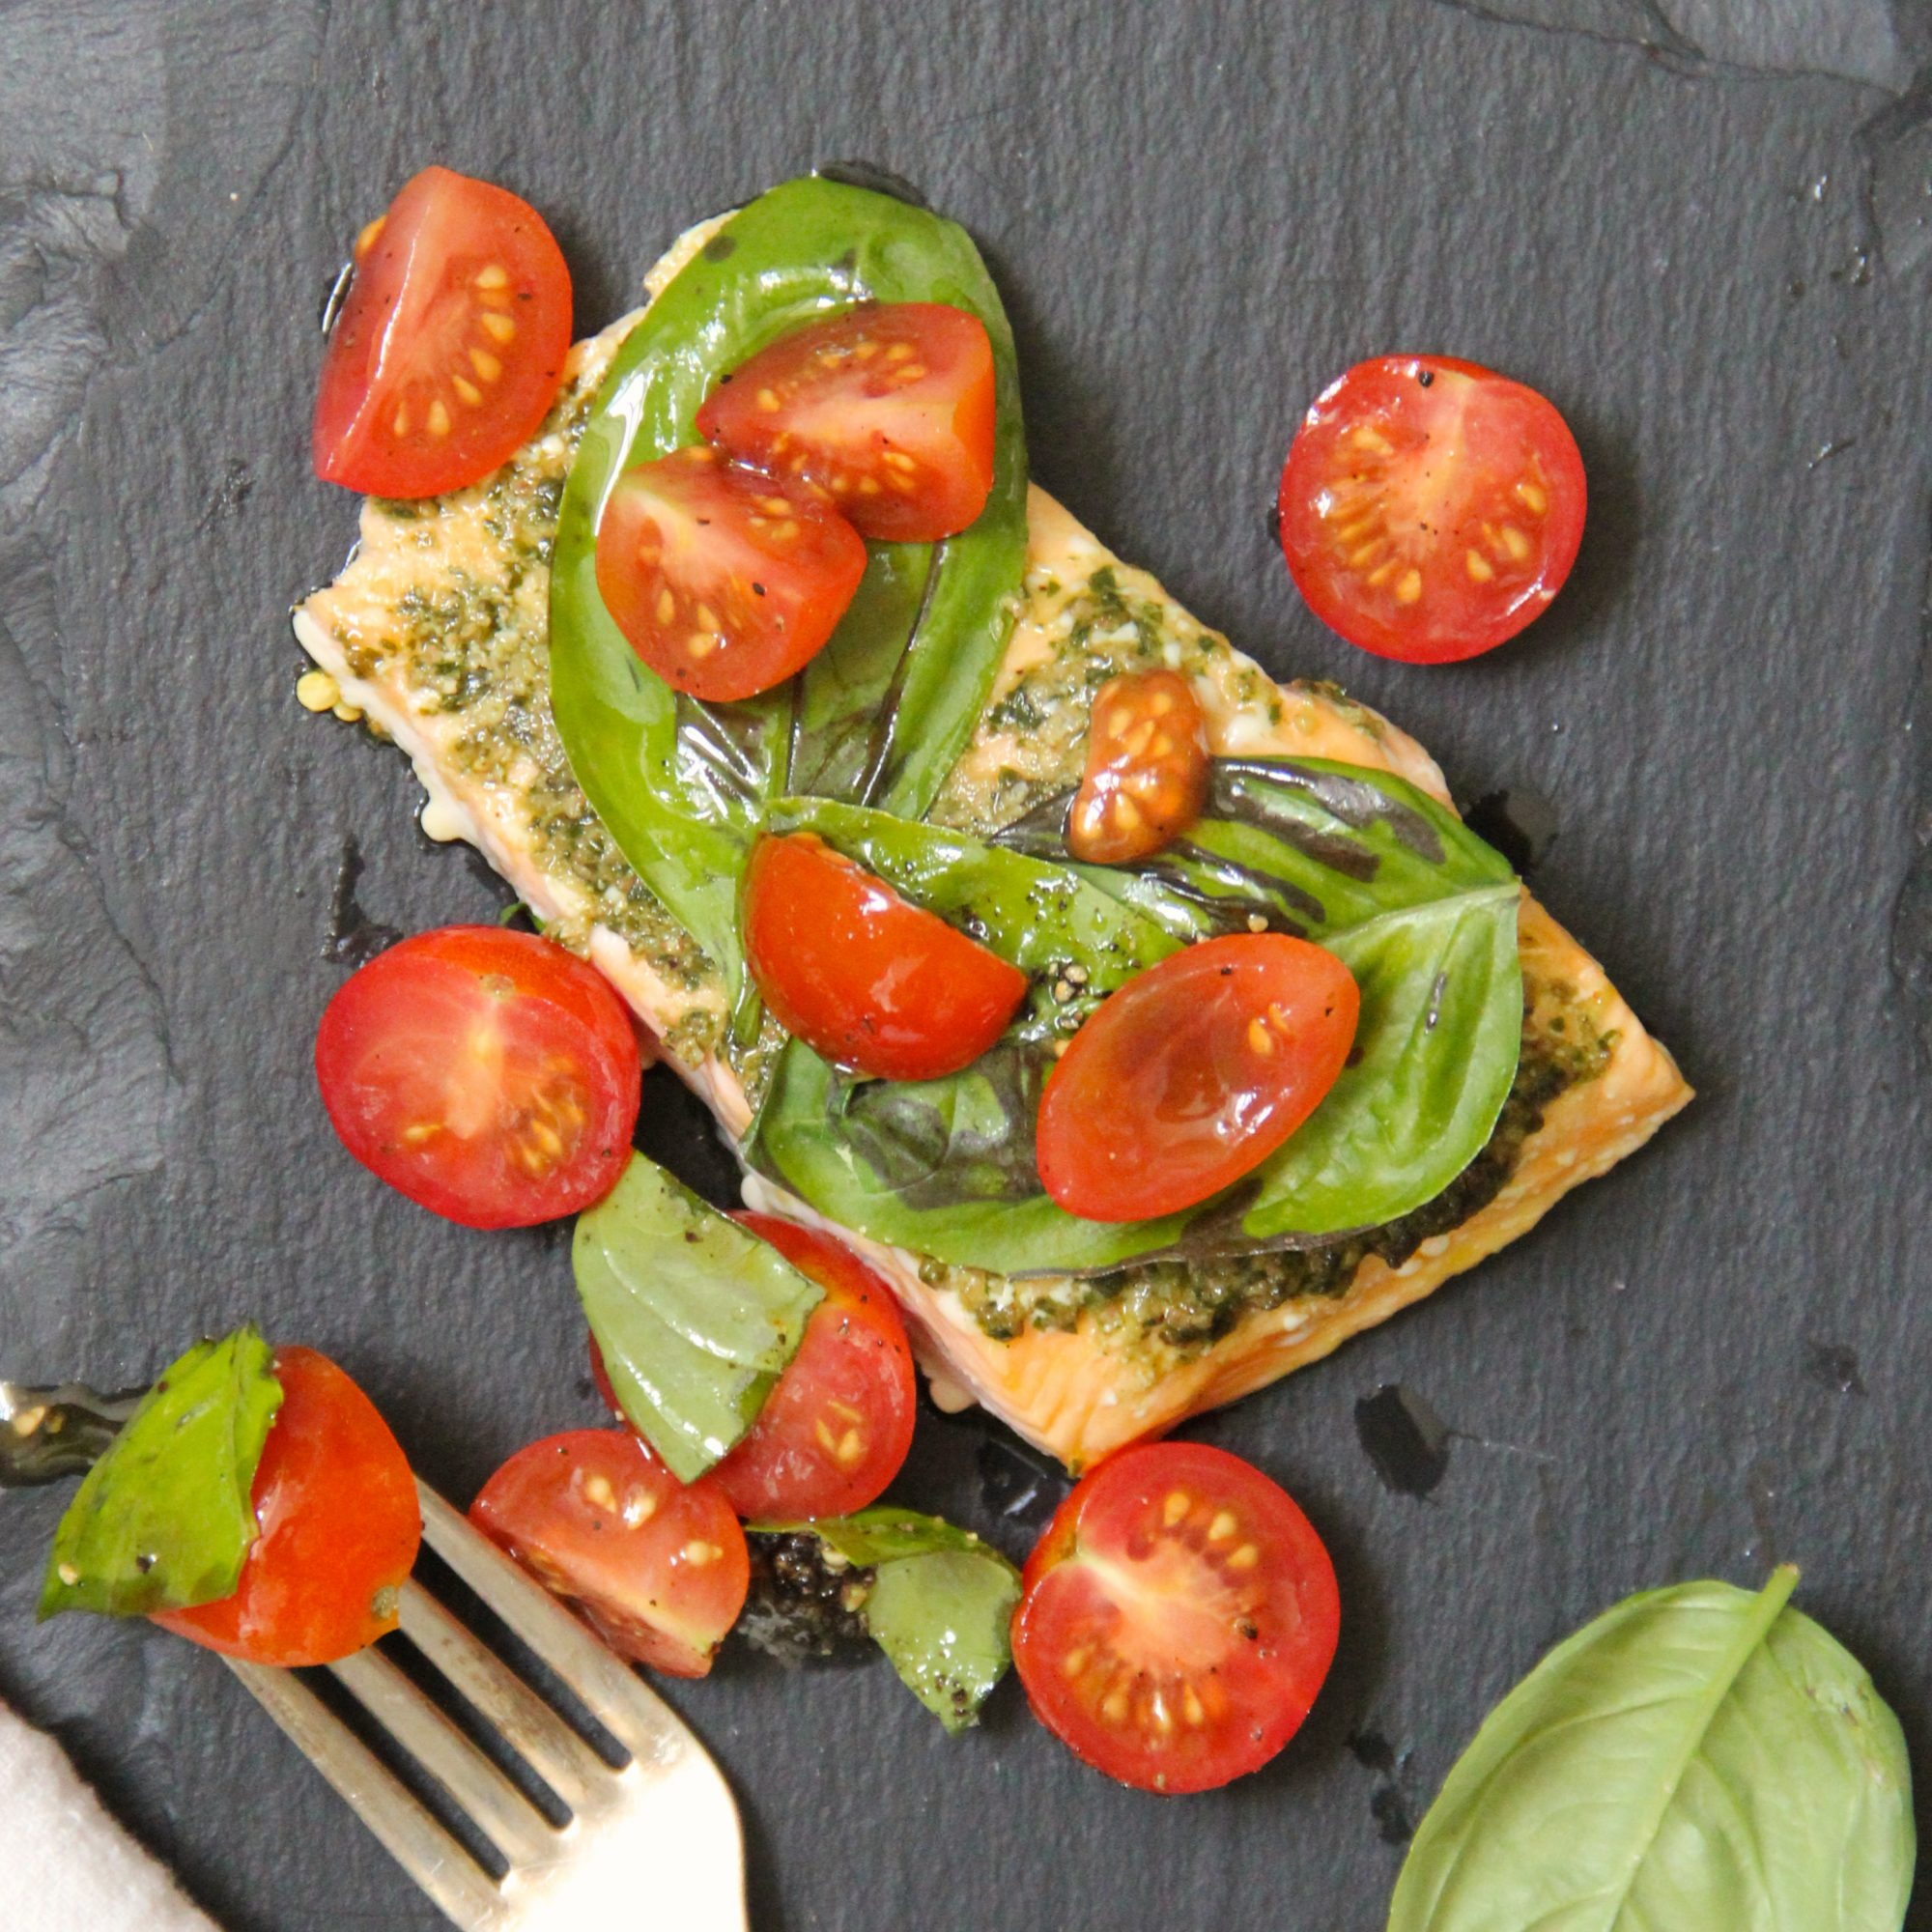 201503-r-basil-baked-salmon-with-cherry-tomato-salad.jpg